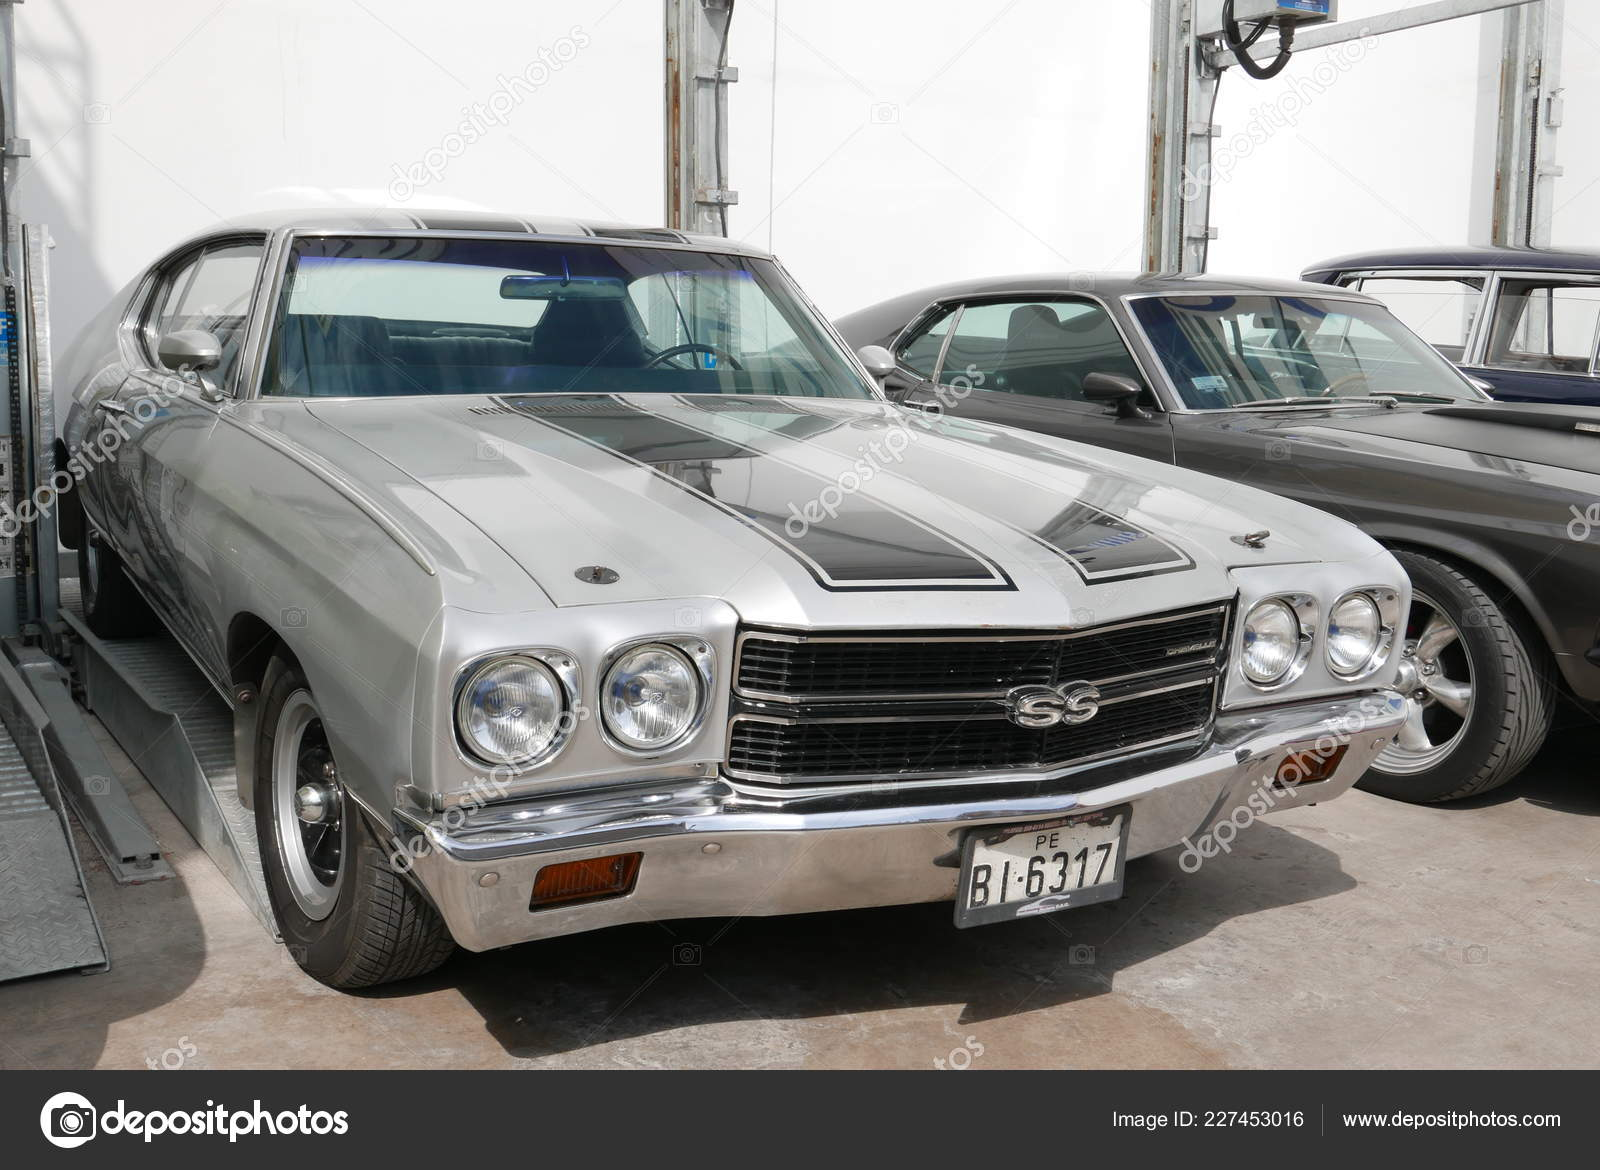 2018 Chevelle Ss >> Lima Peru May 2018 Front Side View Mint Condition Silver